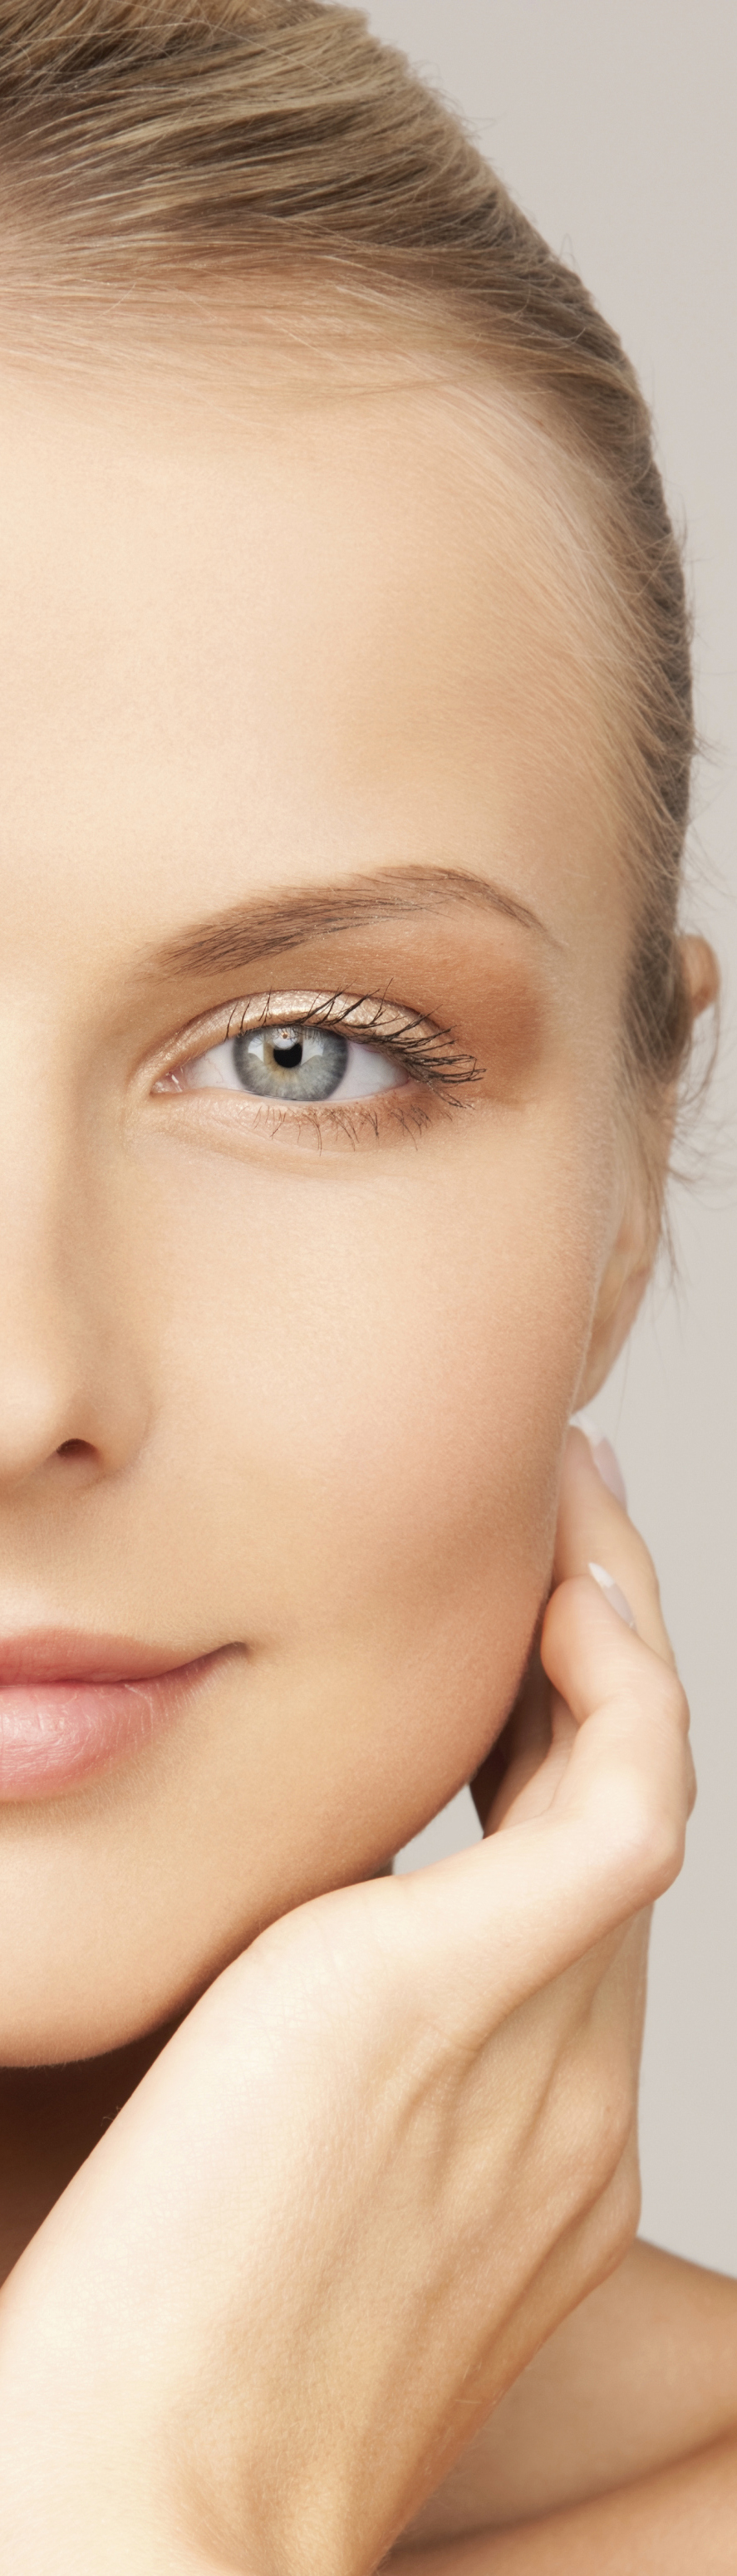 Click to book your eMatrix treatment.  It's safe for all skin types, and there is no downtime.